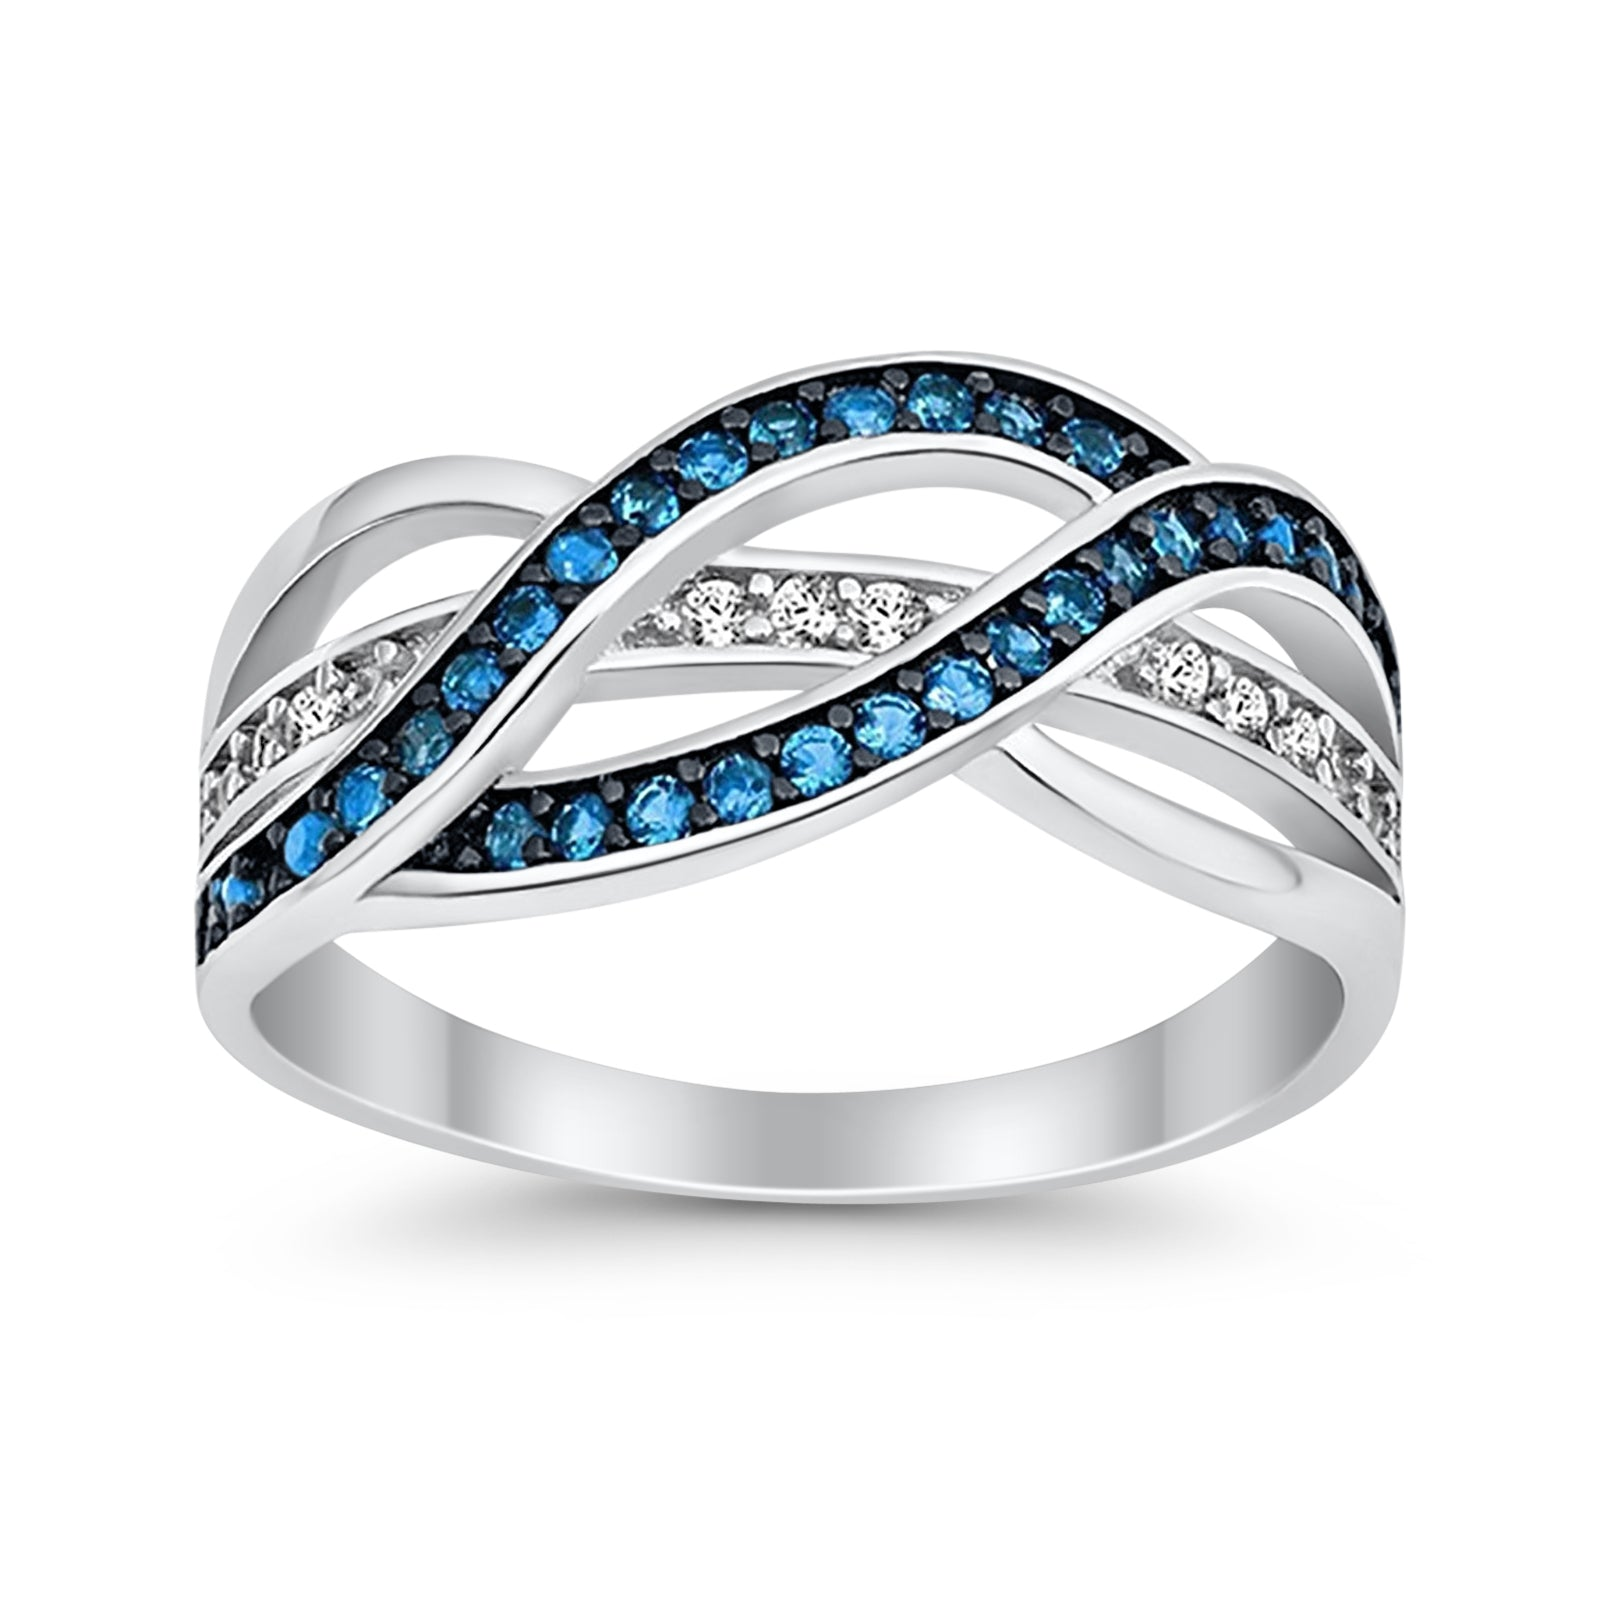 Weave Knot Ring Crisscross Crossover Simulated Blue Topaz Round CZ 925 Sterling Silver